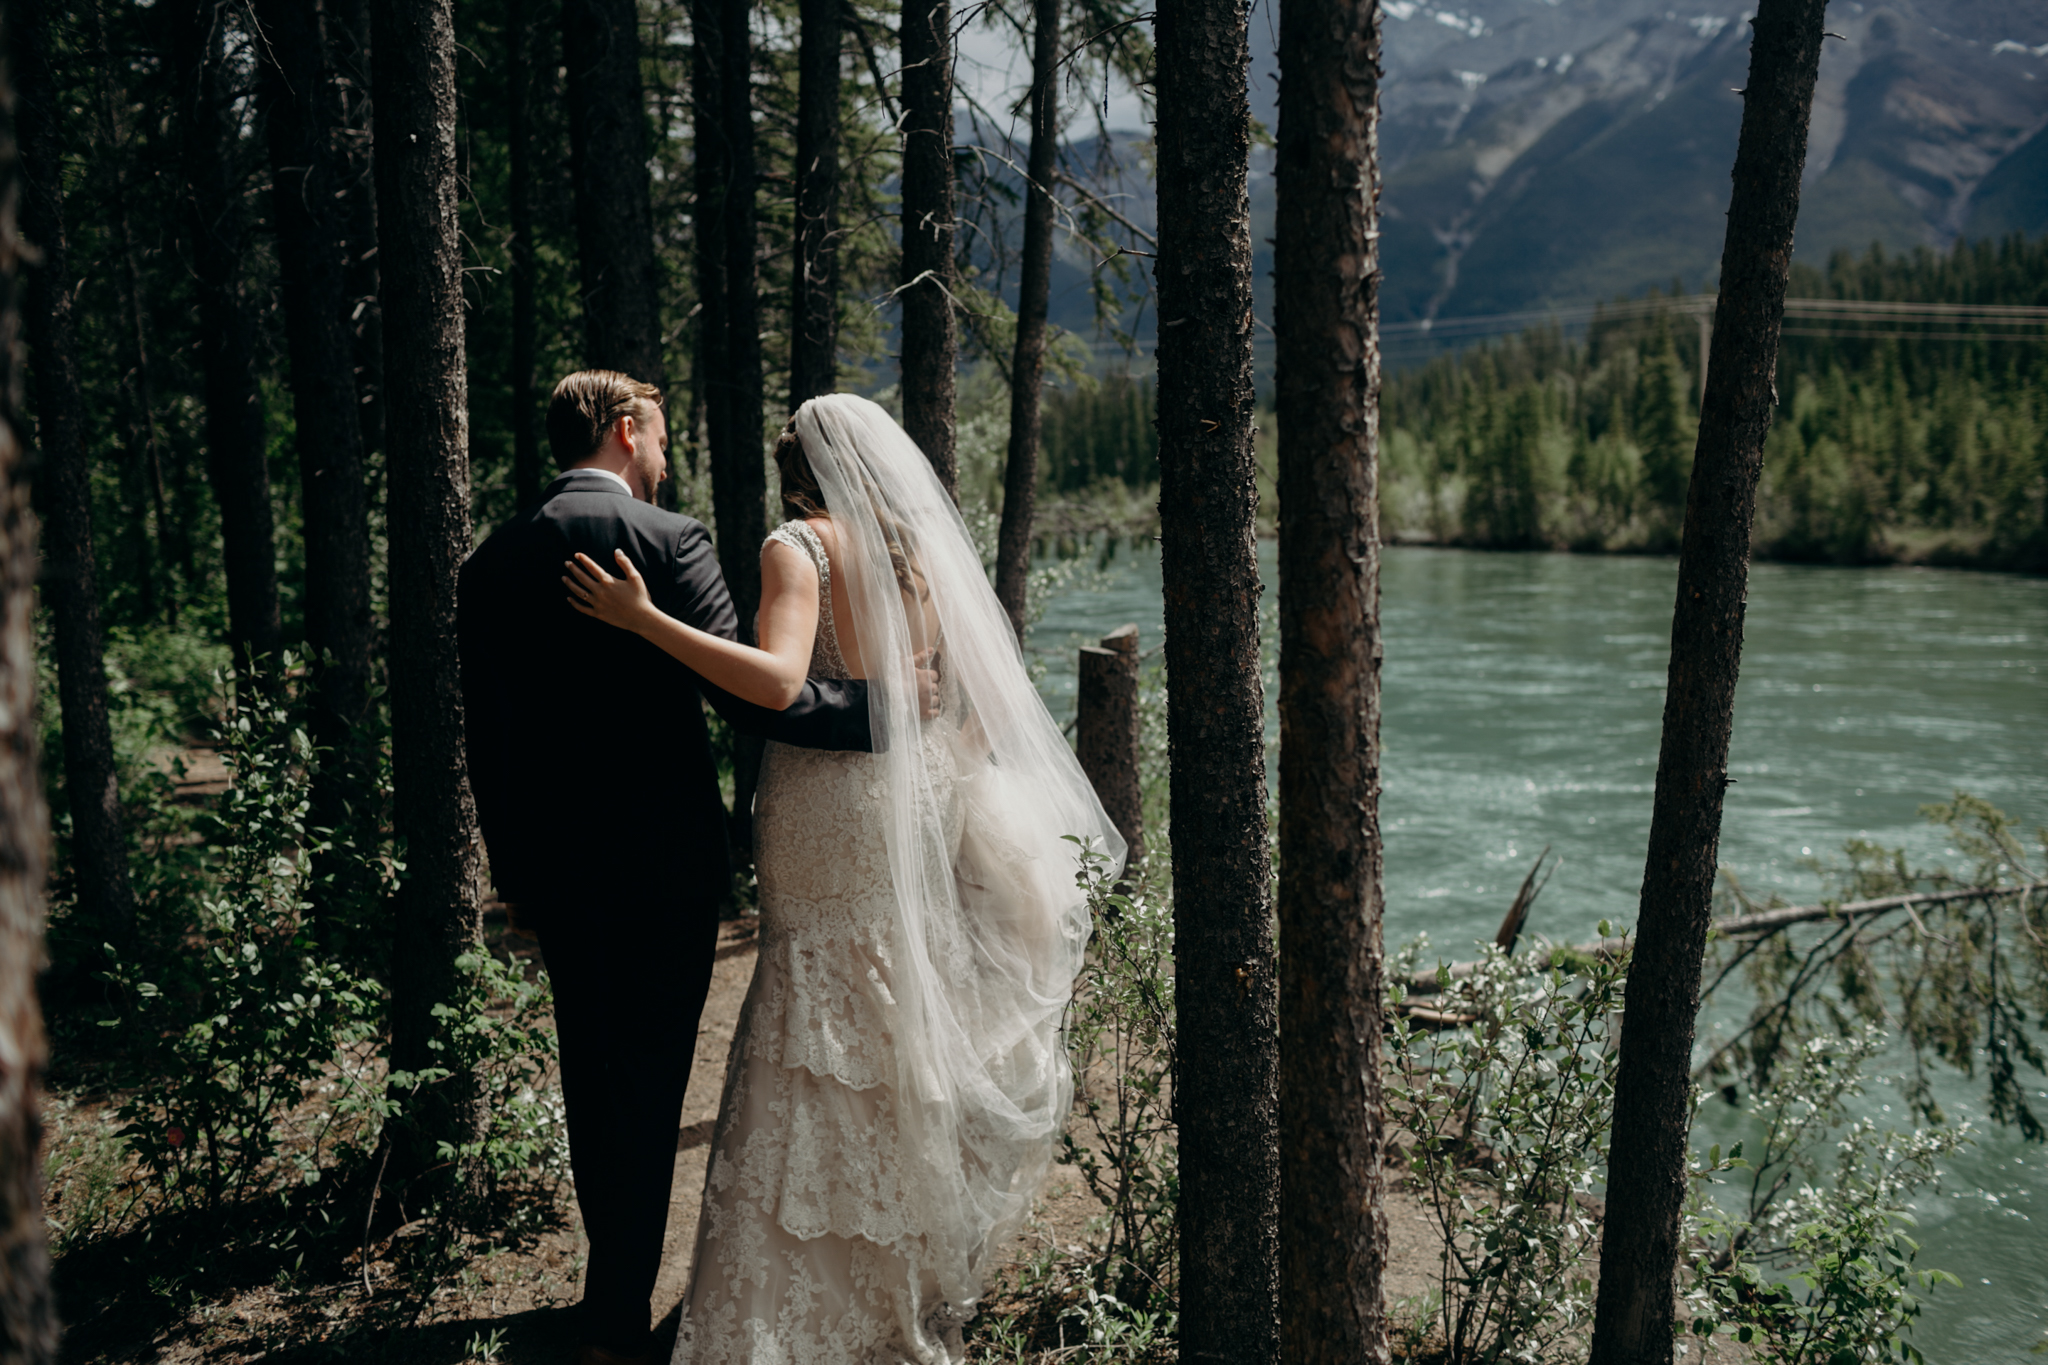 Bride and groom walk along Bow River romantic wedding photograph Banff AB